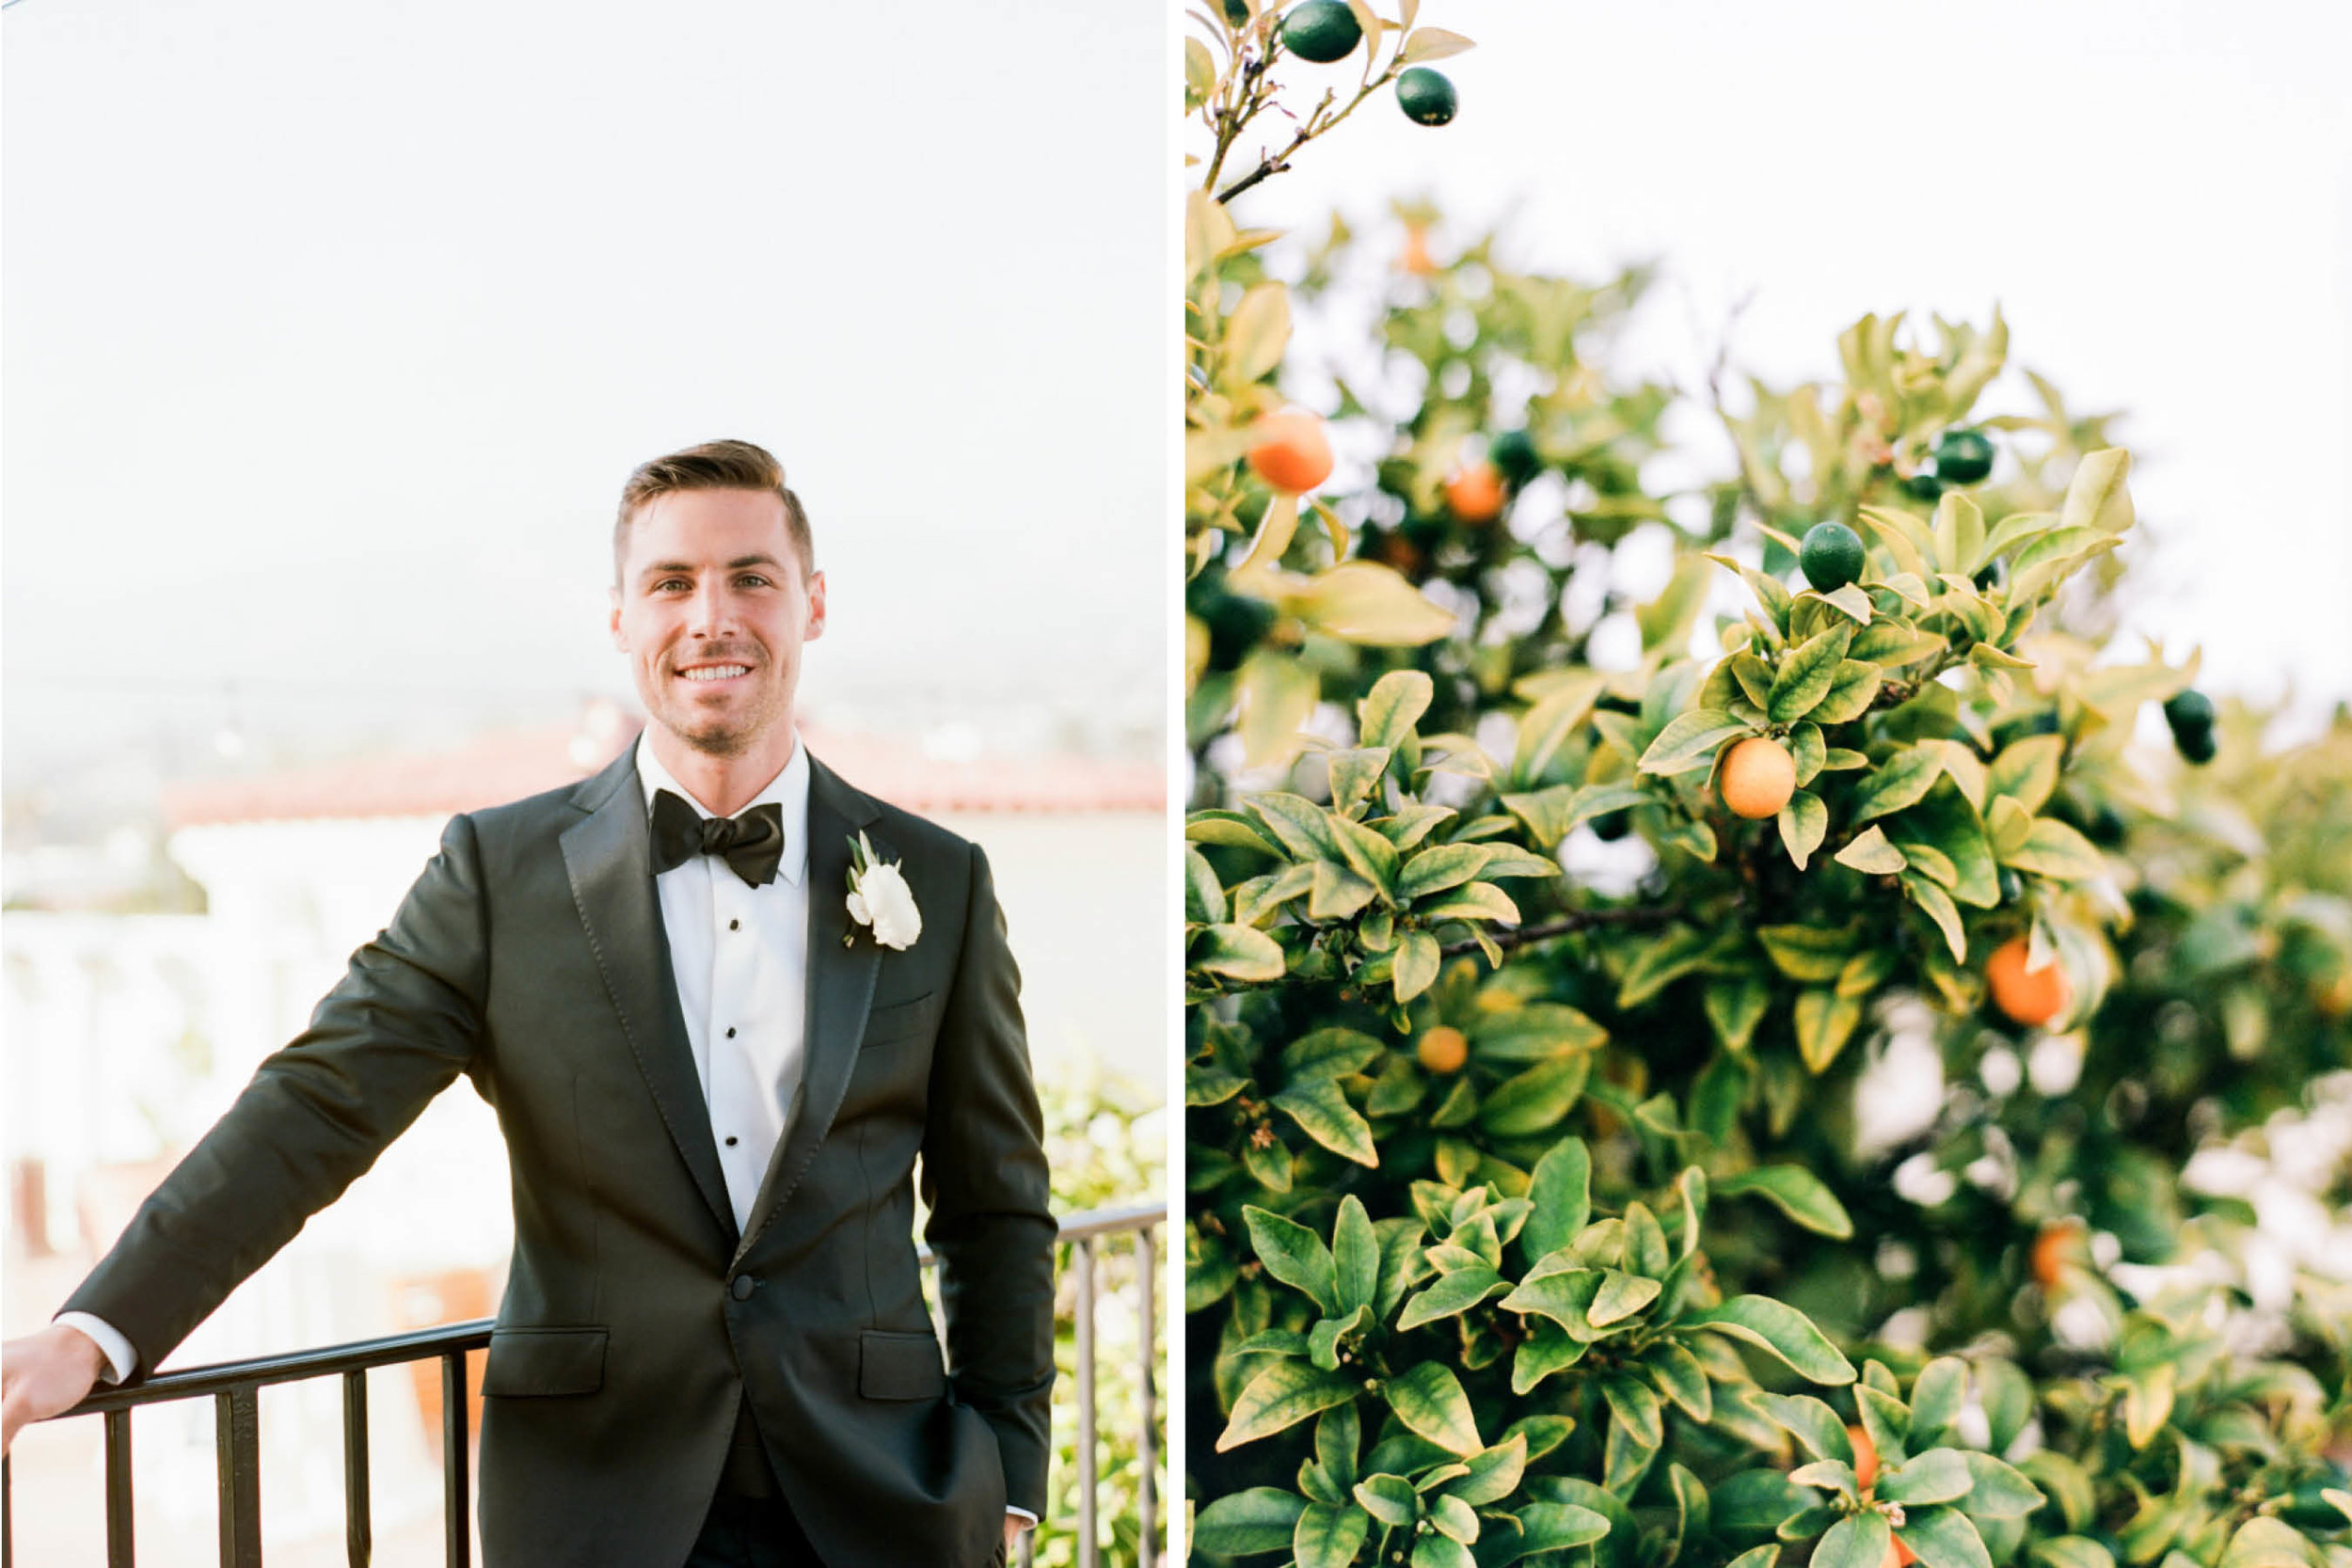 alegria-by-design-wedding-planner-planning-event-design-coordinator-day-of-canary-hotel-rooftop-beach-view-downtown-santa-barbara (6).jpg